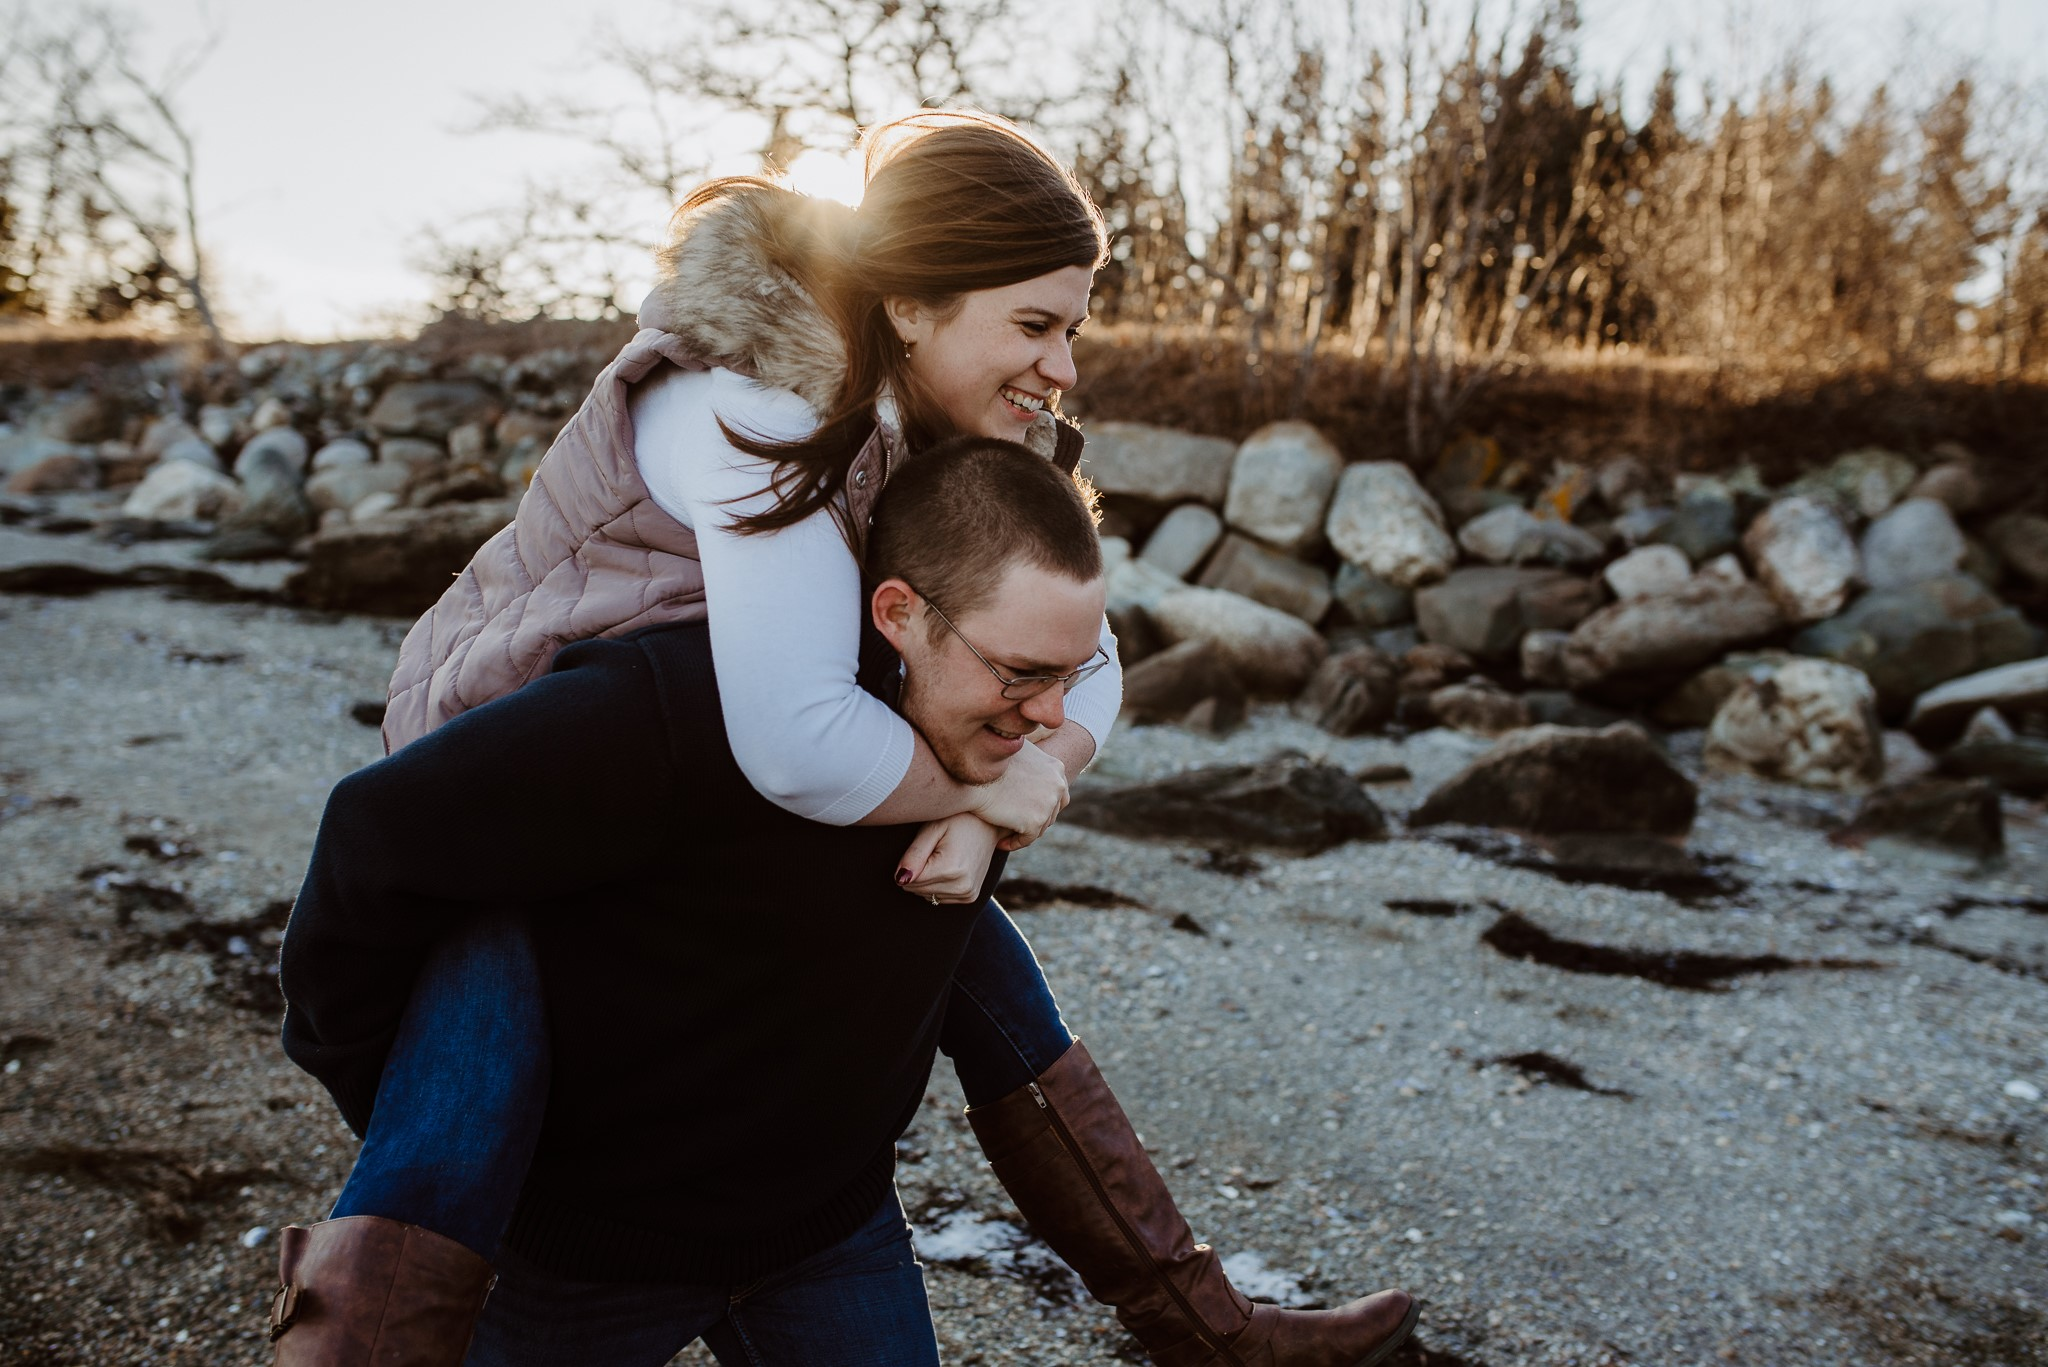 Unposed Prompts for ANY Photo Session   Promptography — Blog